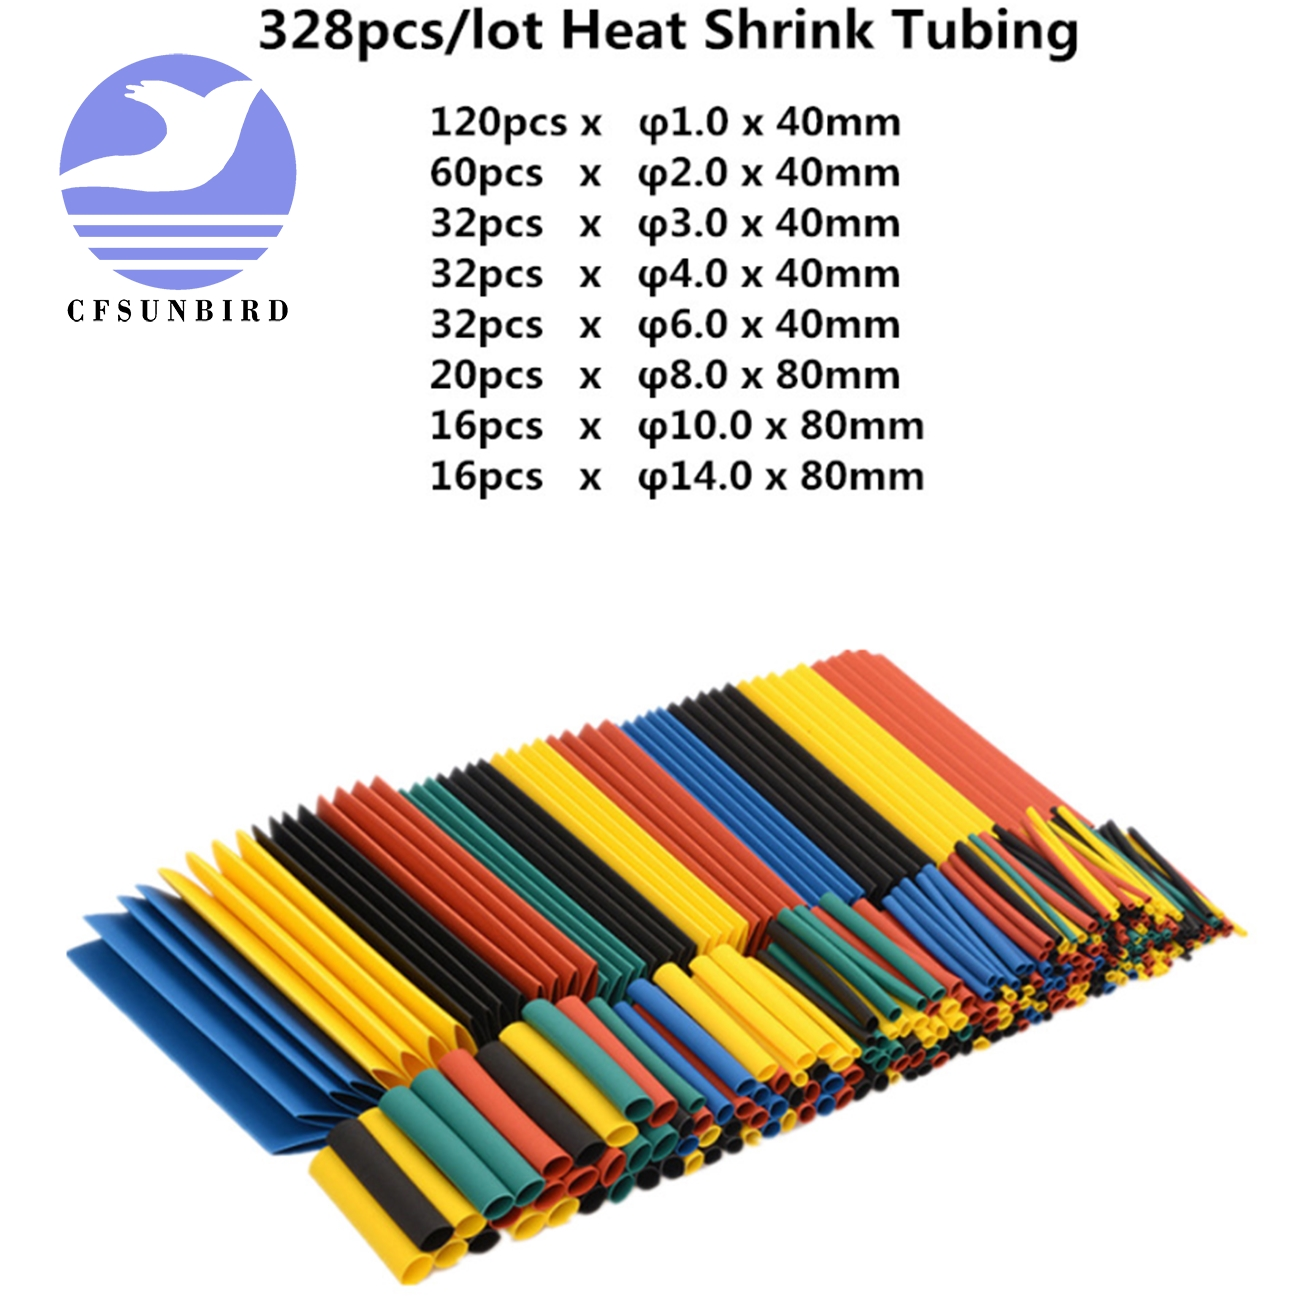 Electrical-Cable-Tube-Kits Car Tubing Sleeving Wrap-Wire Heat-Shrink-Tube Polyolefin